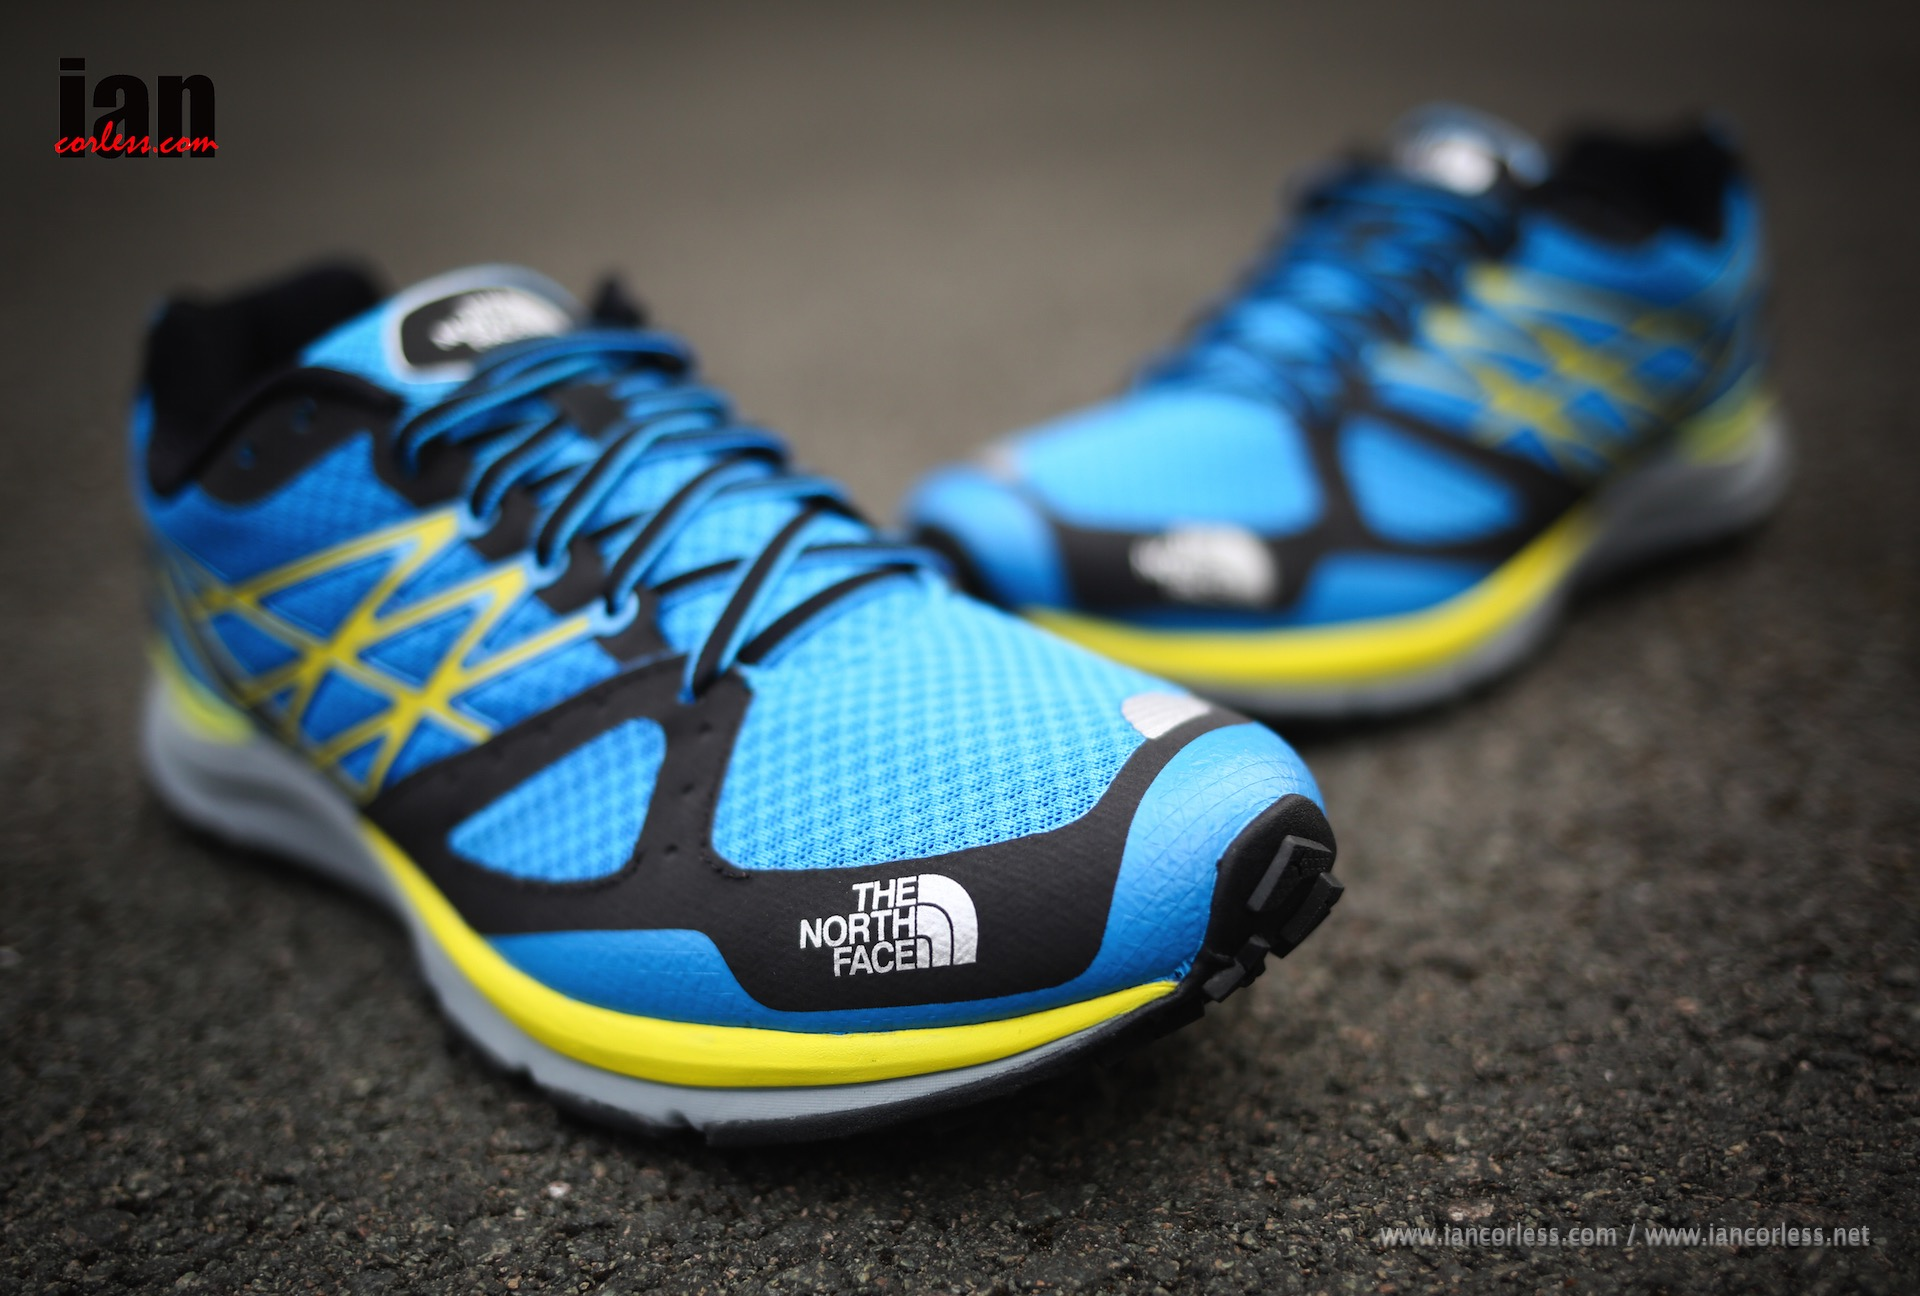 6a06d6ecf1a The North Face Ultra Cardiac Trail Running Shoe Review